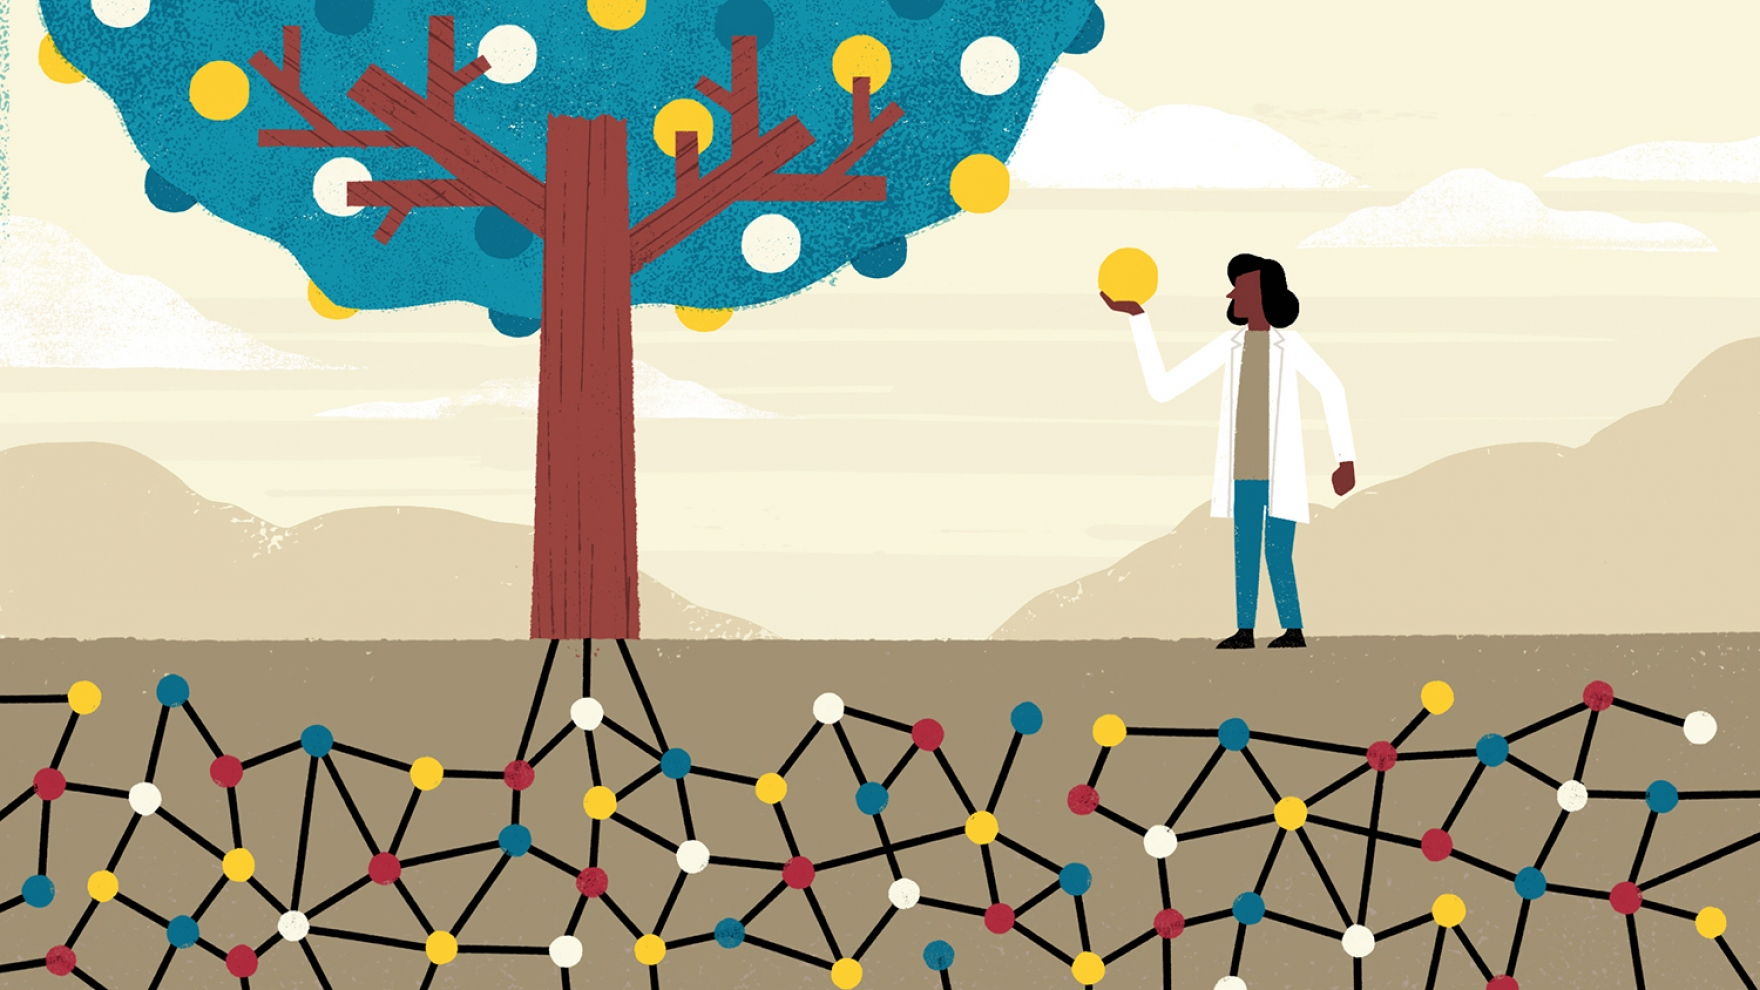 an illustration shows lines feeding up into a tree and a doctor picking a ball off the tree